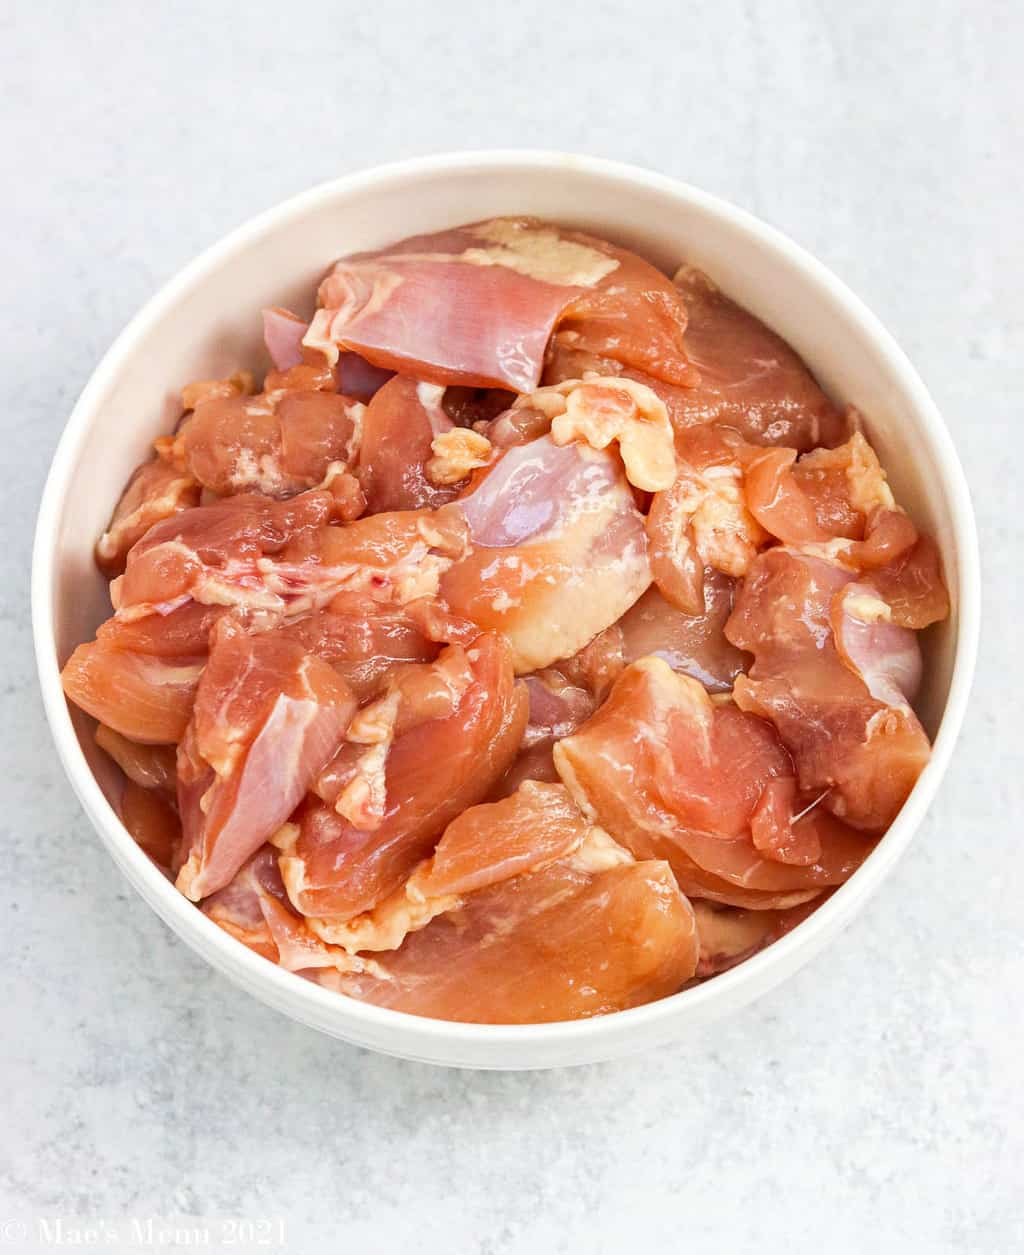 An overhead shot of a bowl of raw chicken pieces